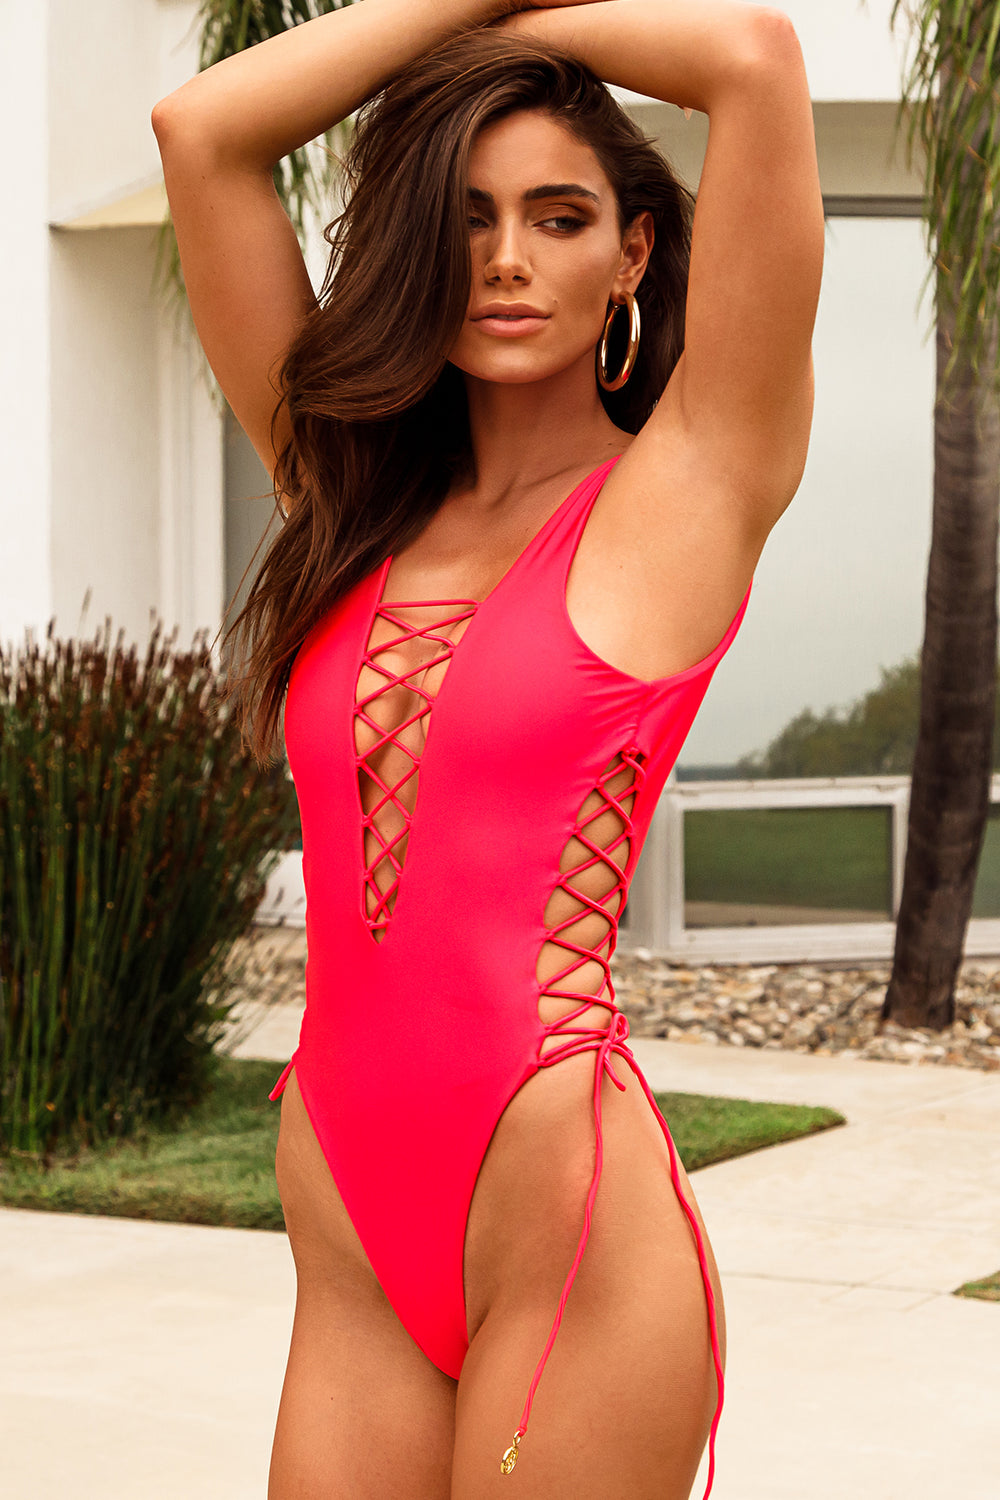 COSITA BUENA - Interlaced Open Side One Piece BodySuit • Bombshell Red